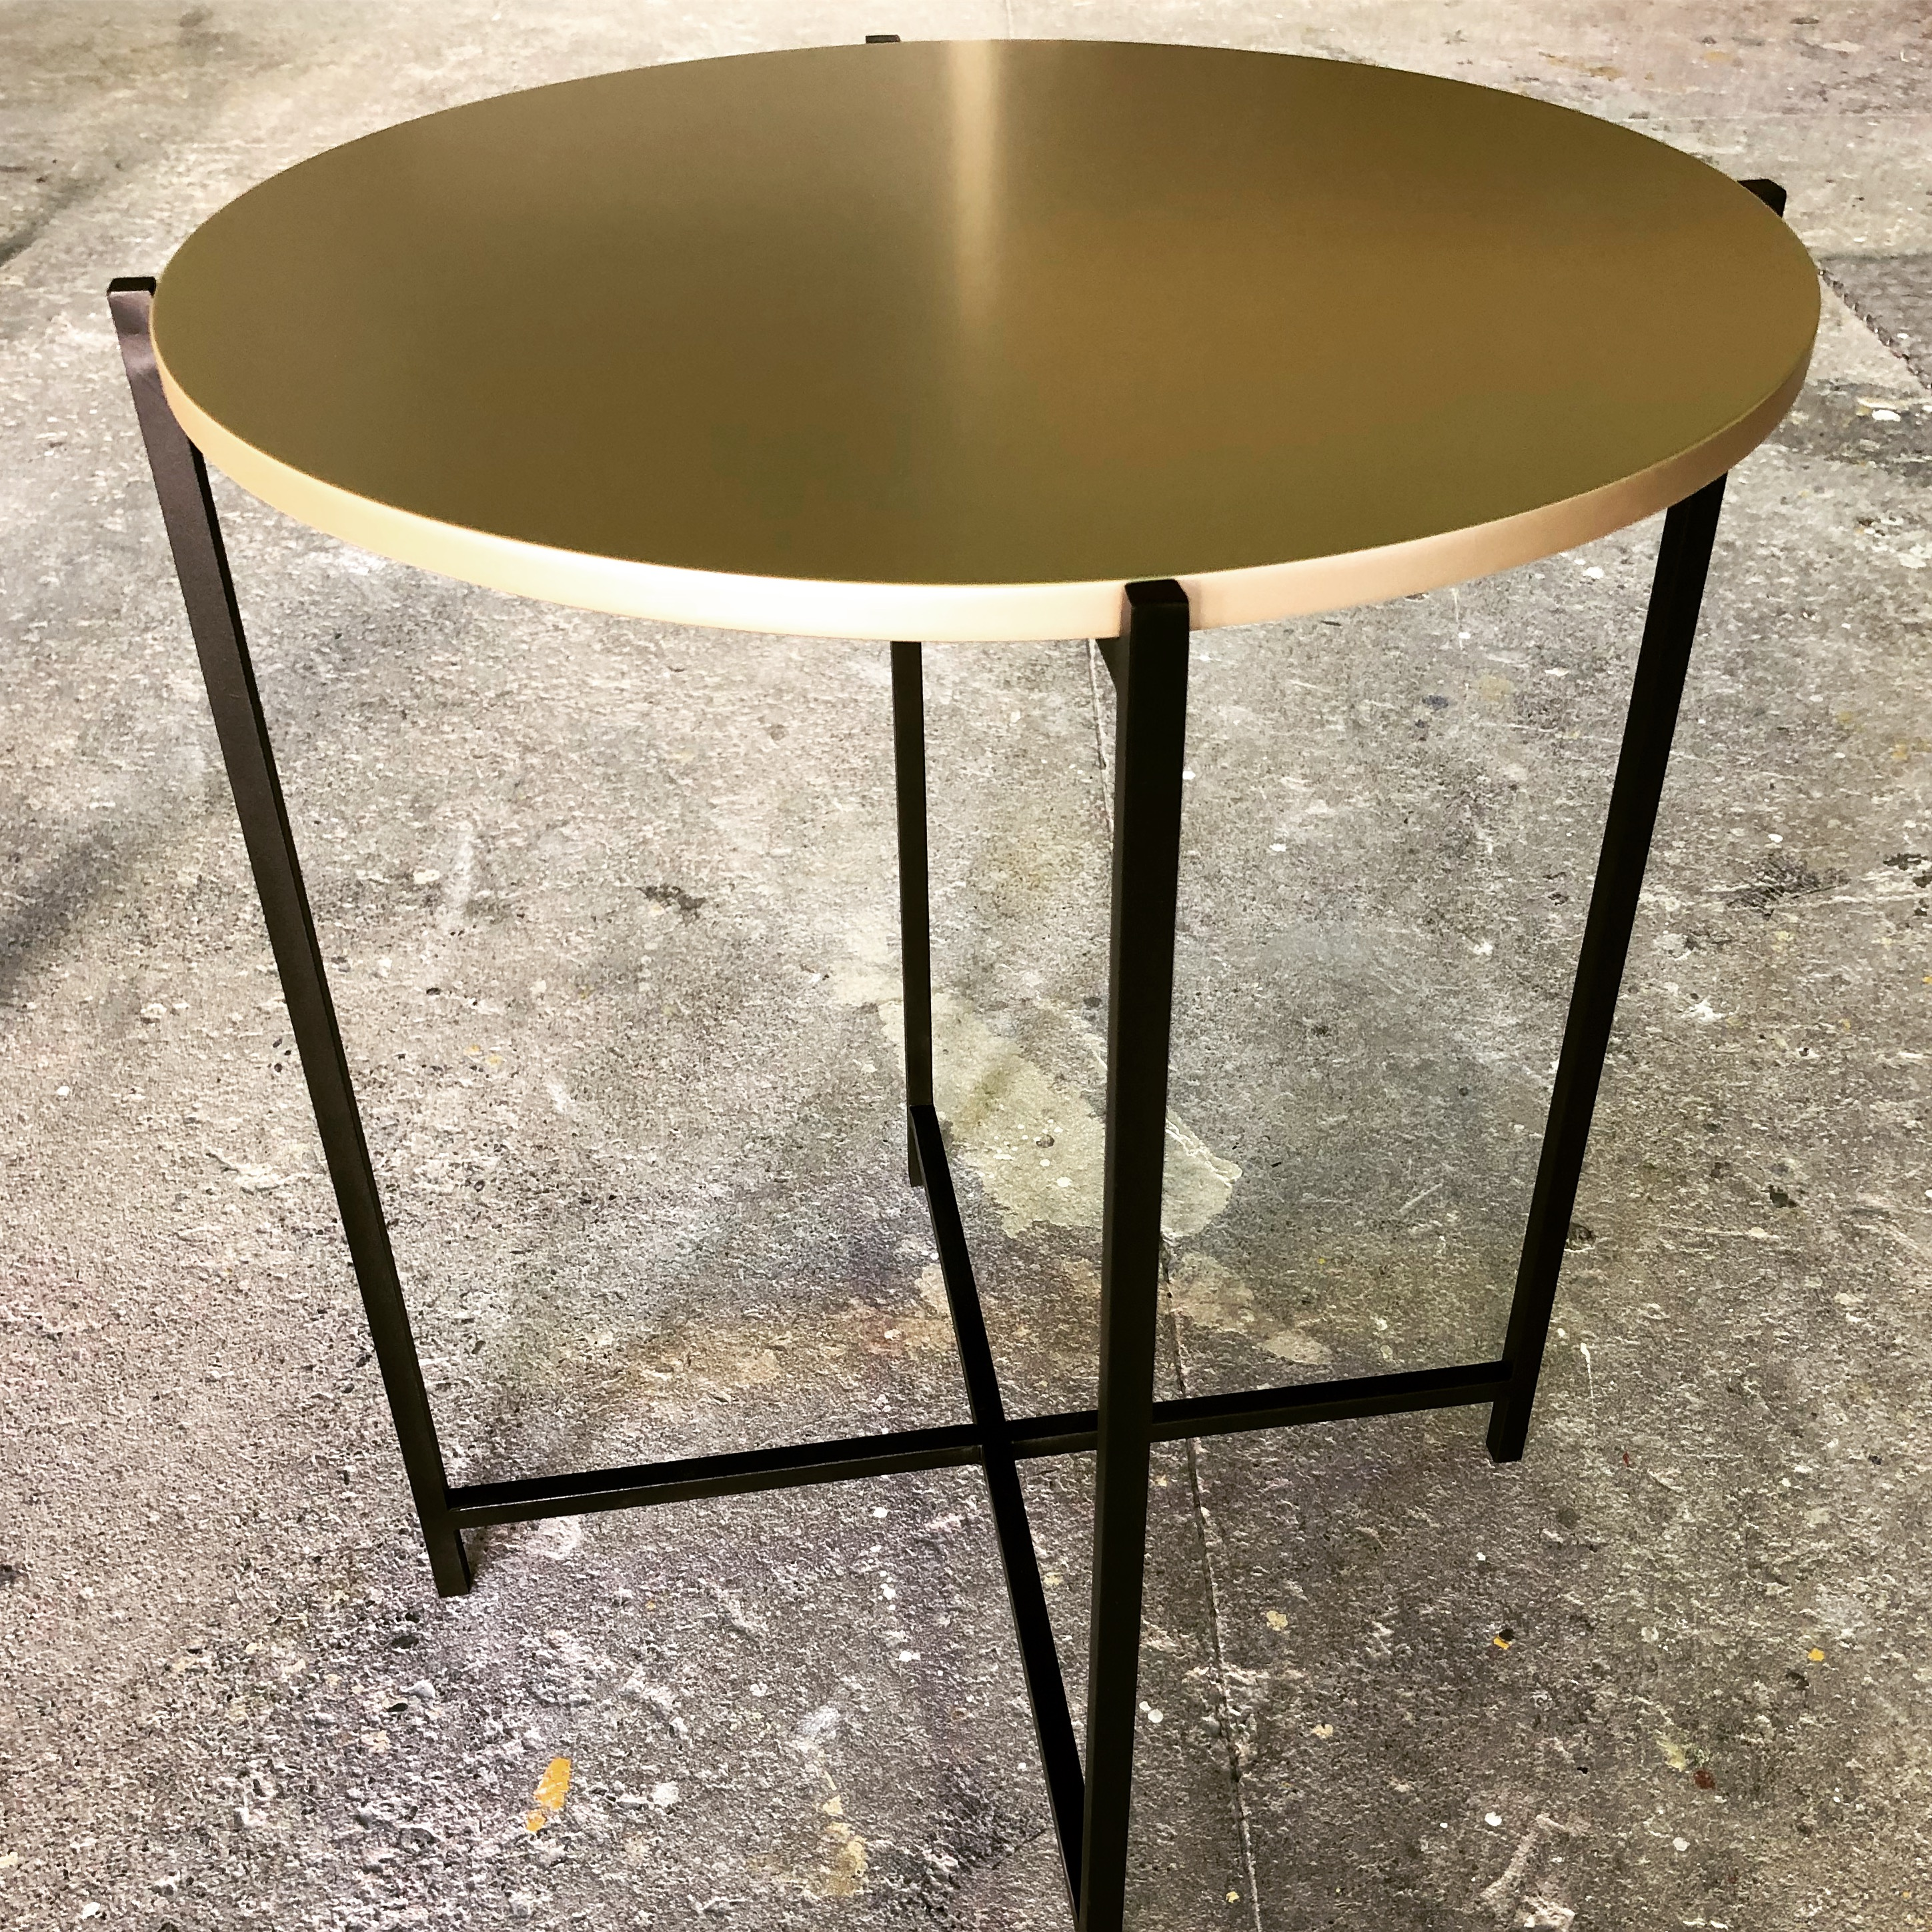 gold-sprayed-top-with-mild-steel-epoxy-coated-frame-